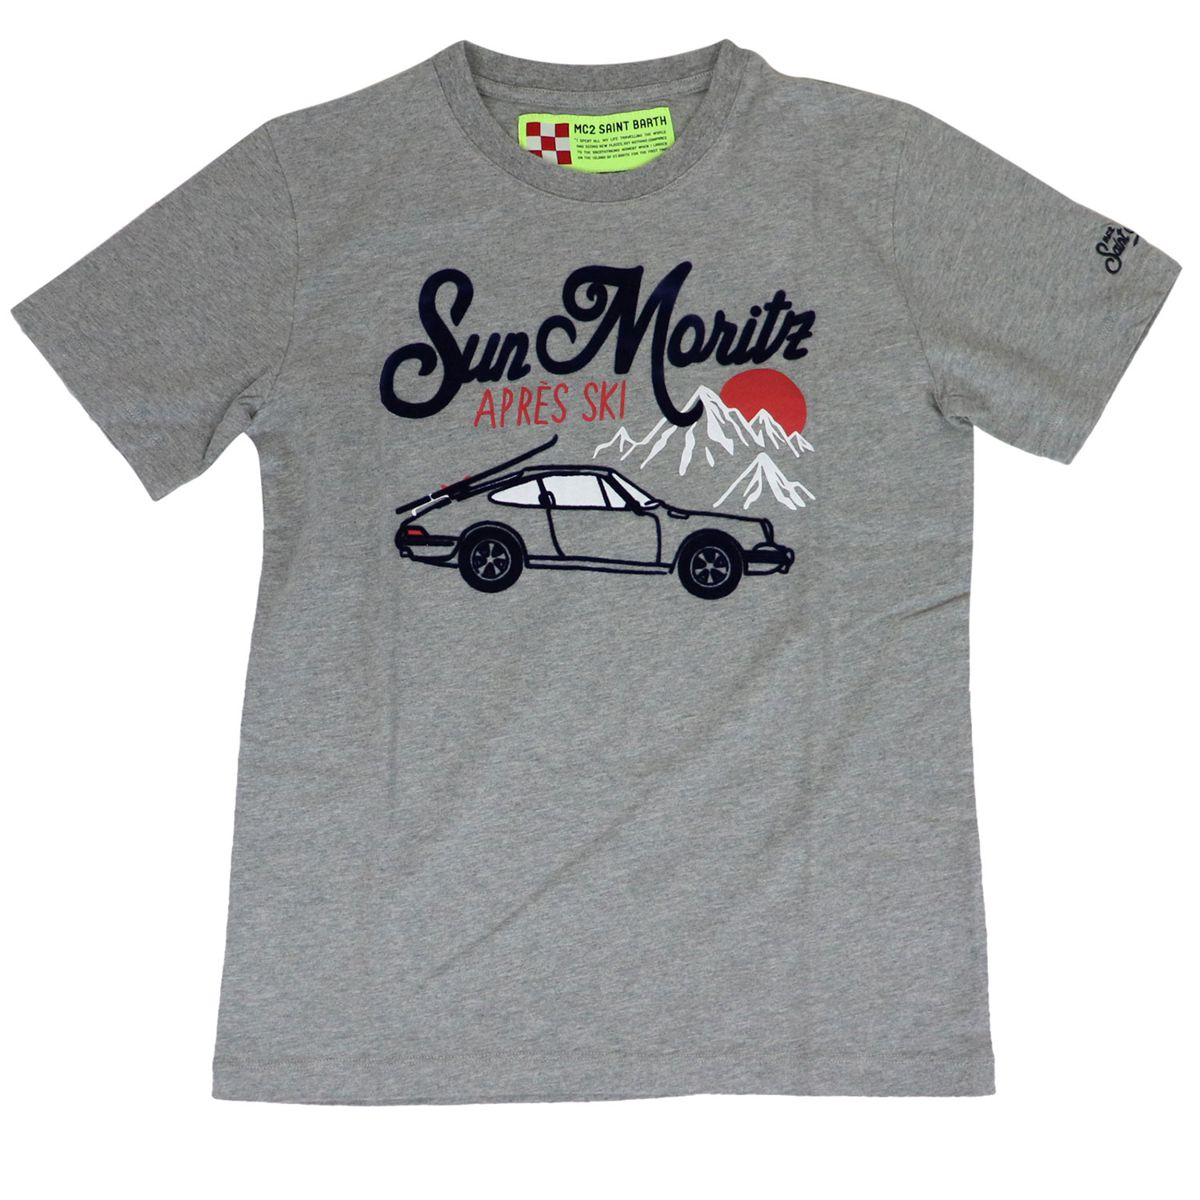 Short sleeve cotton t-shirt with front print Grey MC2 Saint Barth